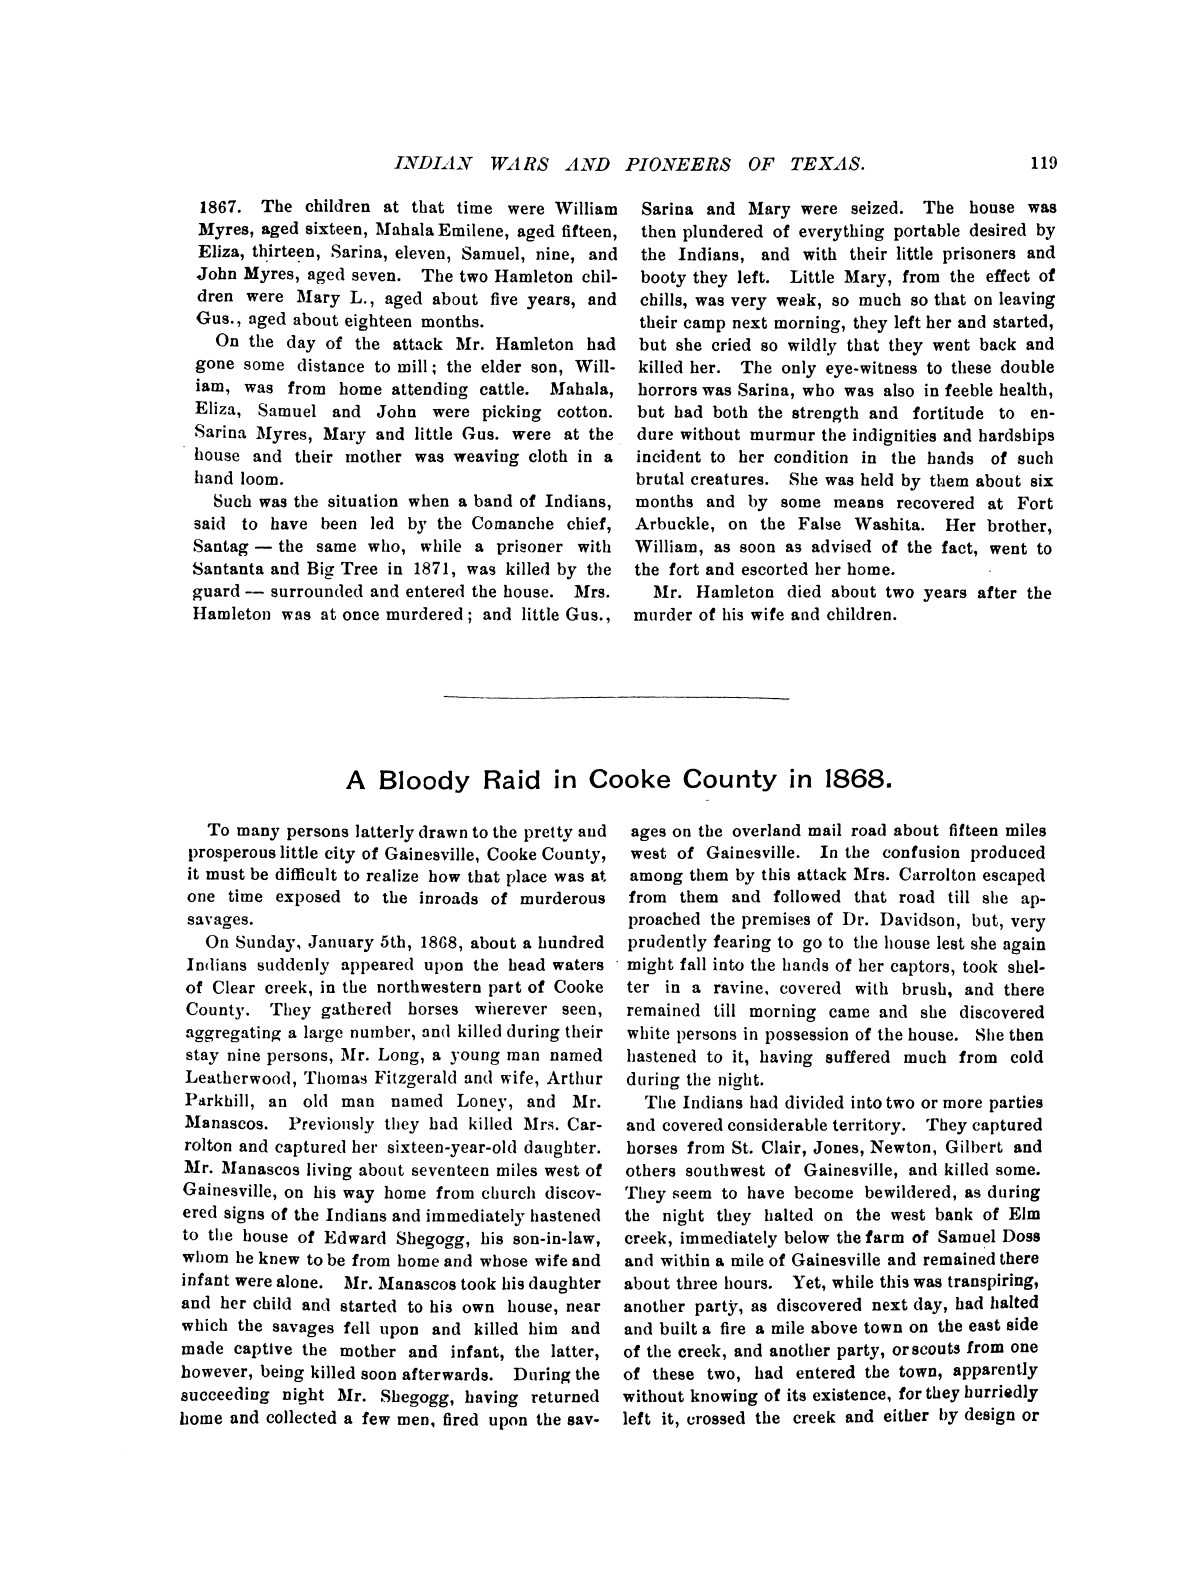 Indian wars and pioneers of Texas / by John Henry Brown.                                                                                                      [Sequence #]: 131 of 894